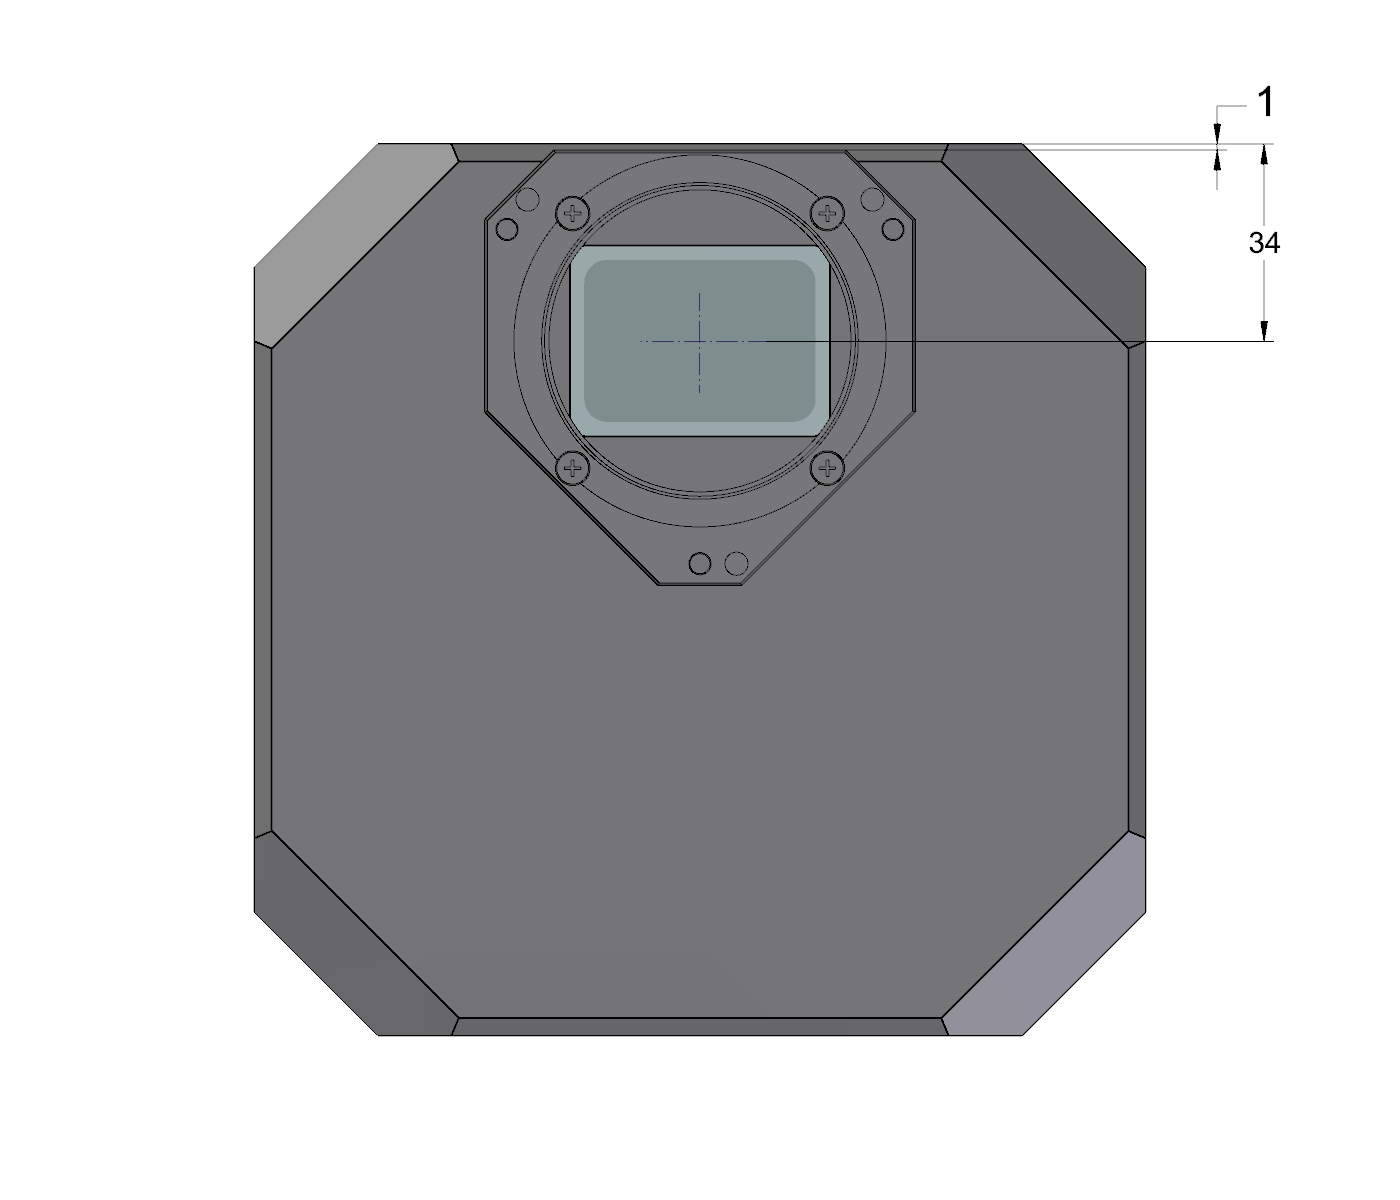 G3 Mark II camera head front view dimensions